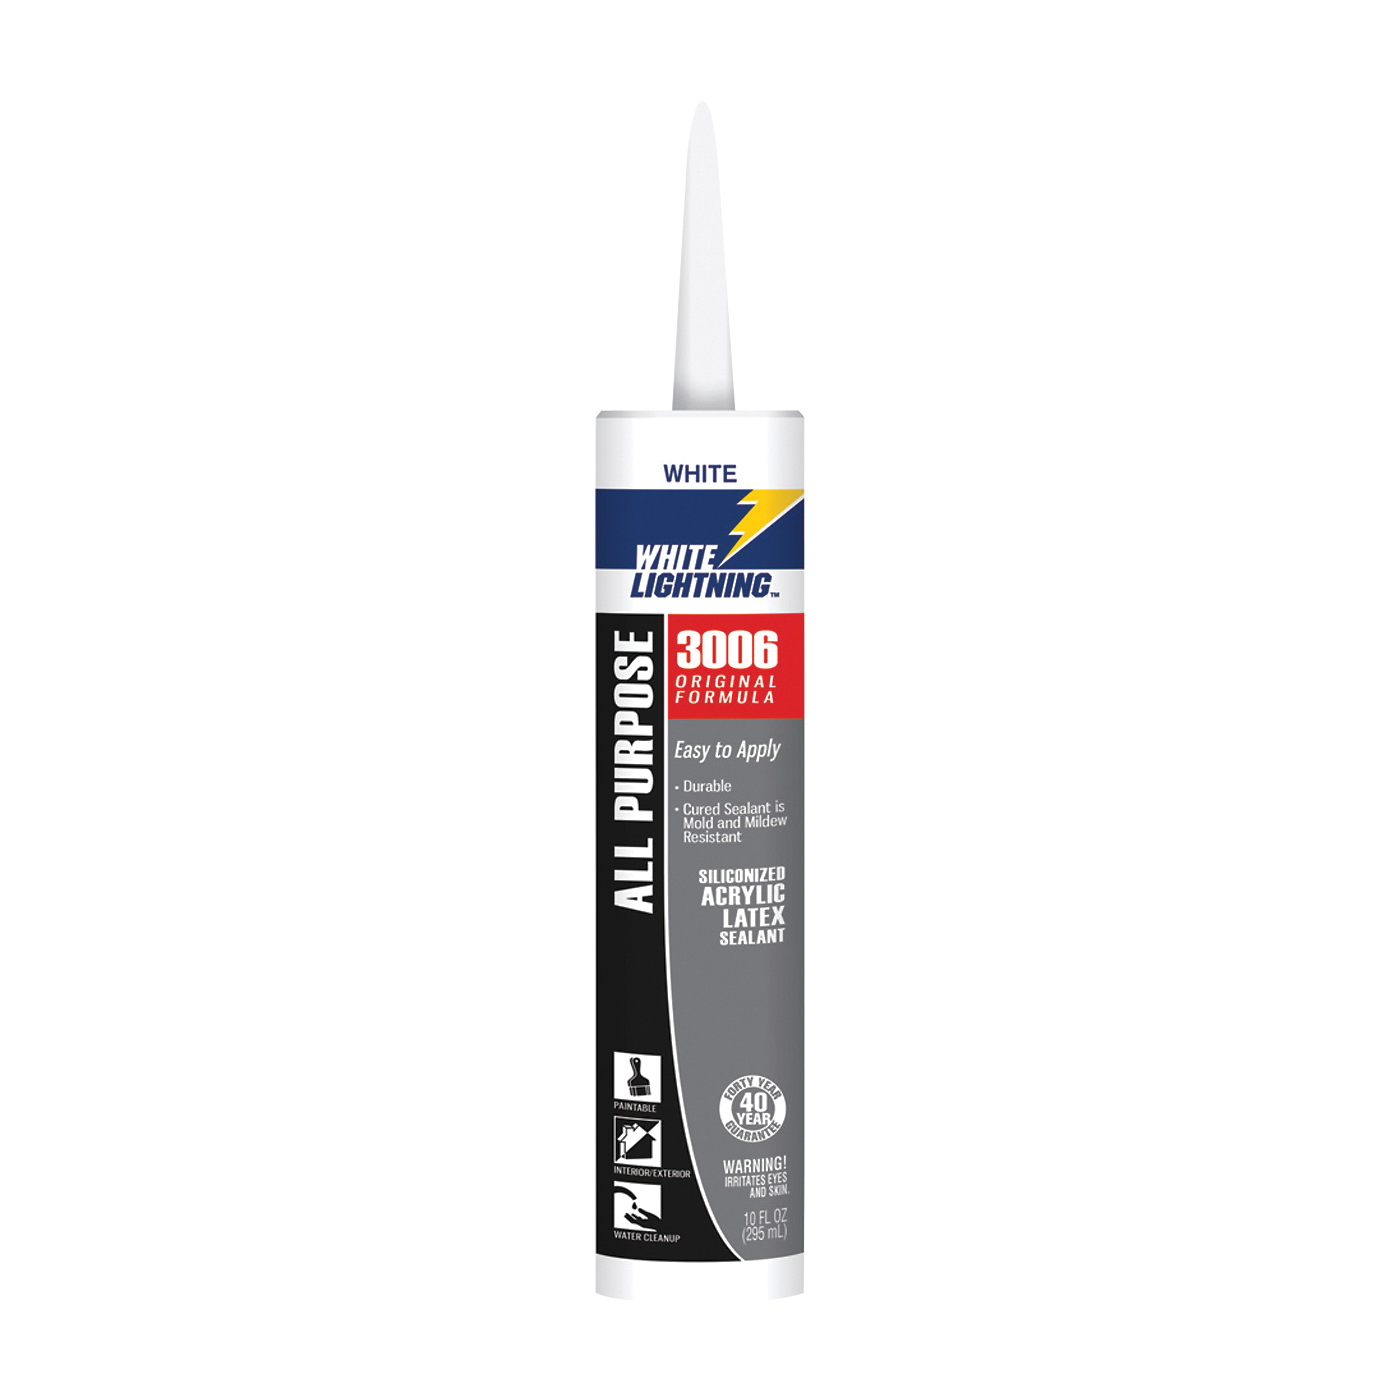 Picture of WHITE LIGHTNING W12AF0010 Adhesive Caulk, White, 5 to 7 days Curing, 40 deg F, 10 fl-oz Package, Cartridge